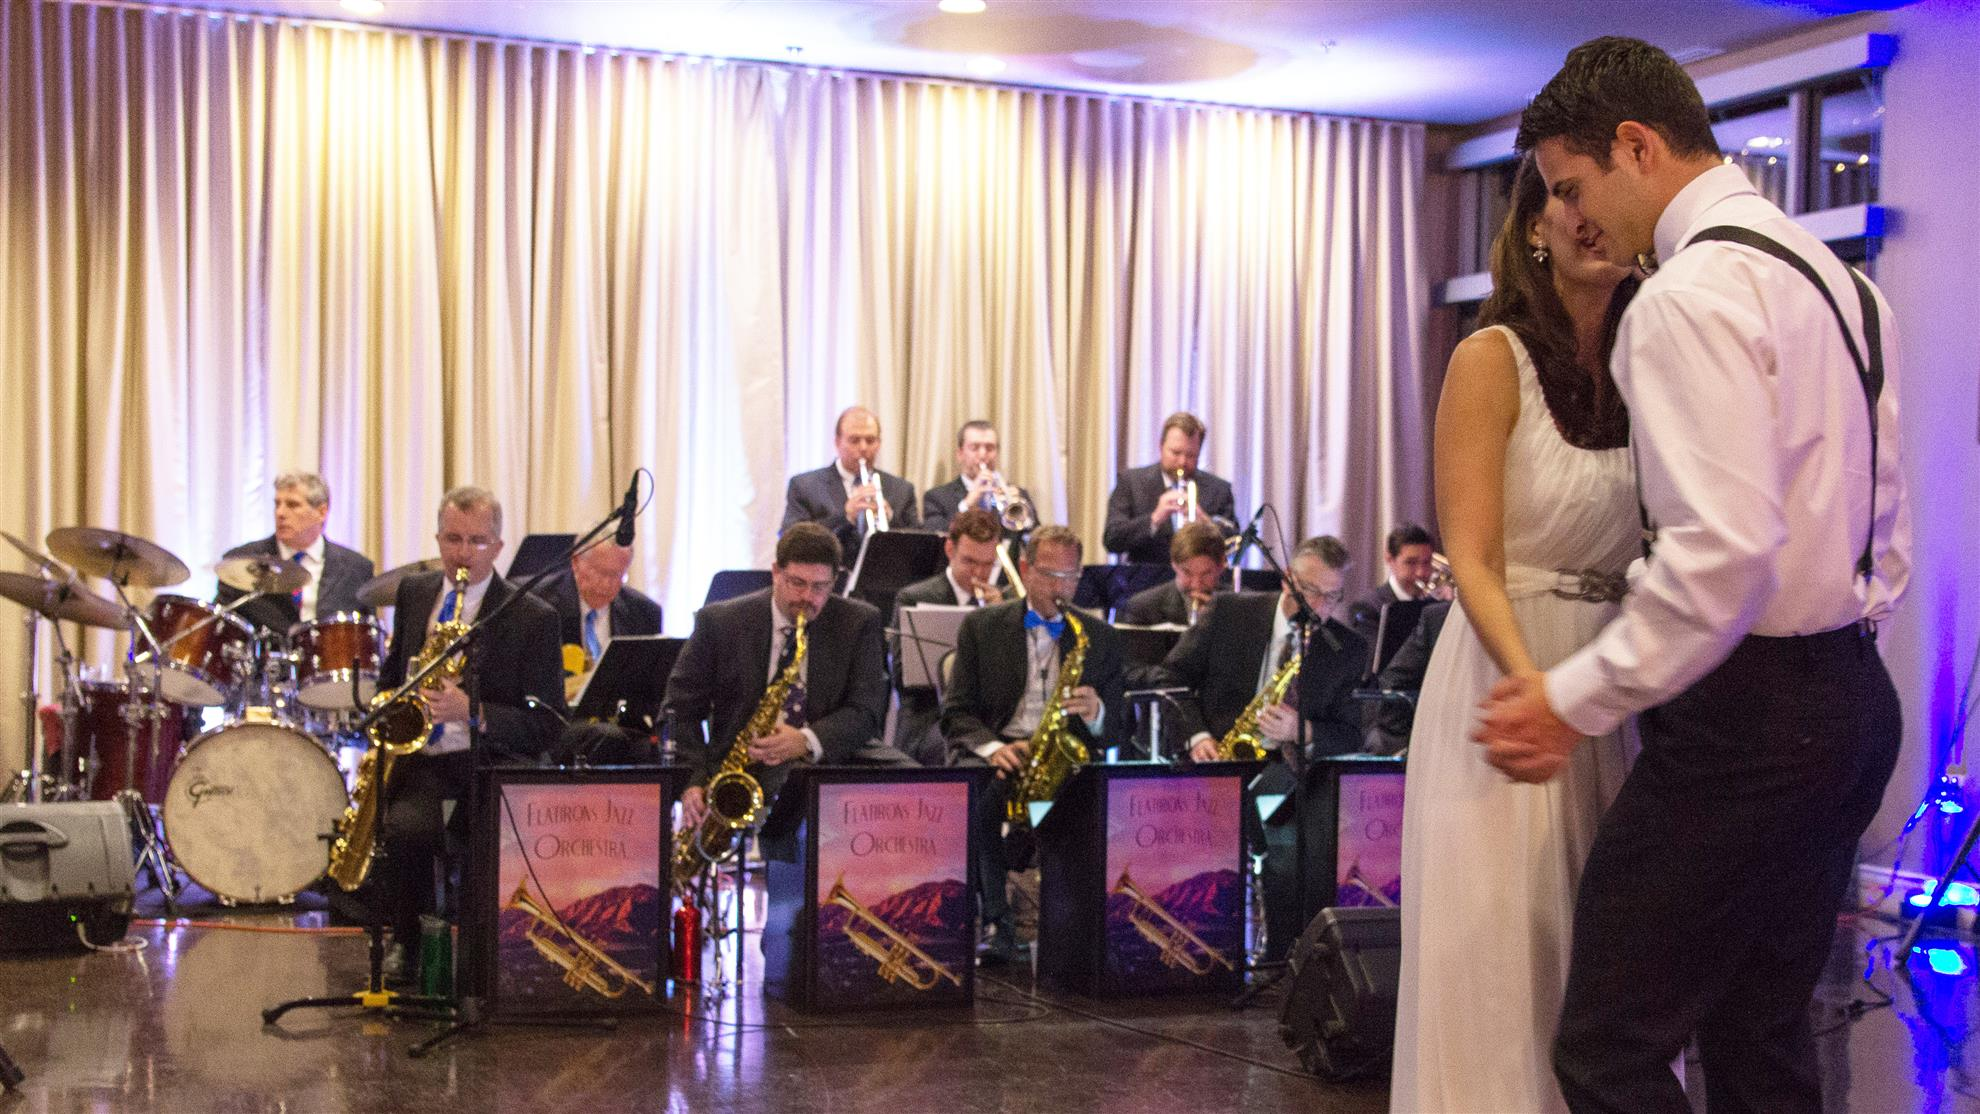 Flatirons Jazz Orchestra with couple dancing